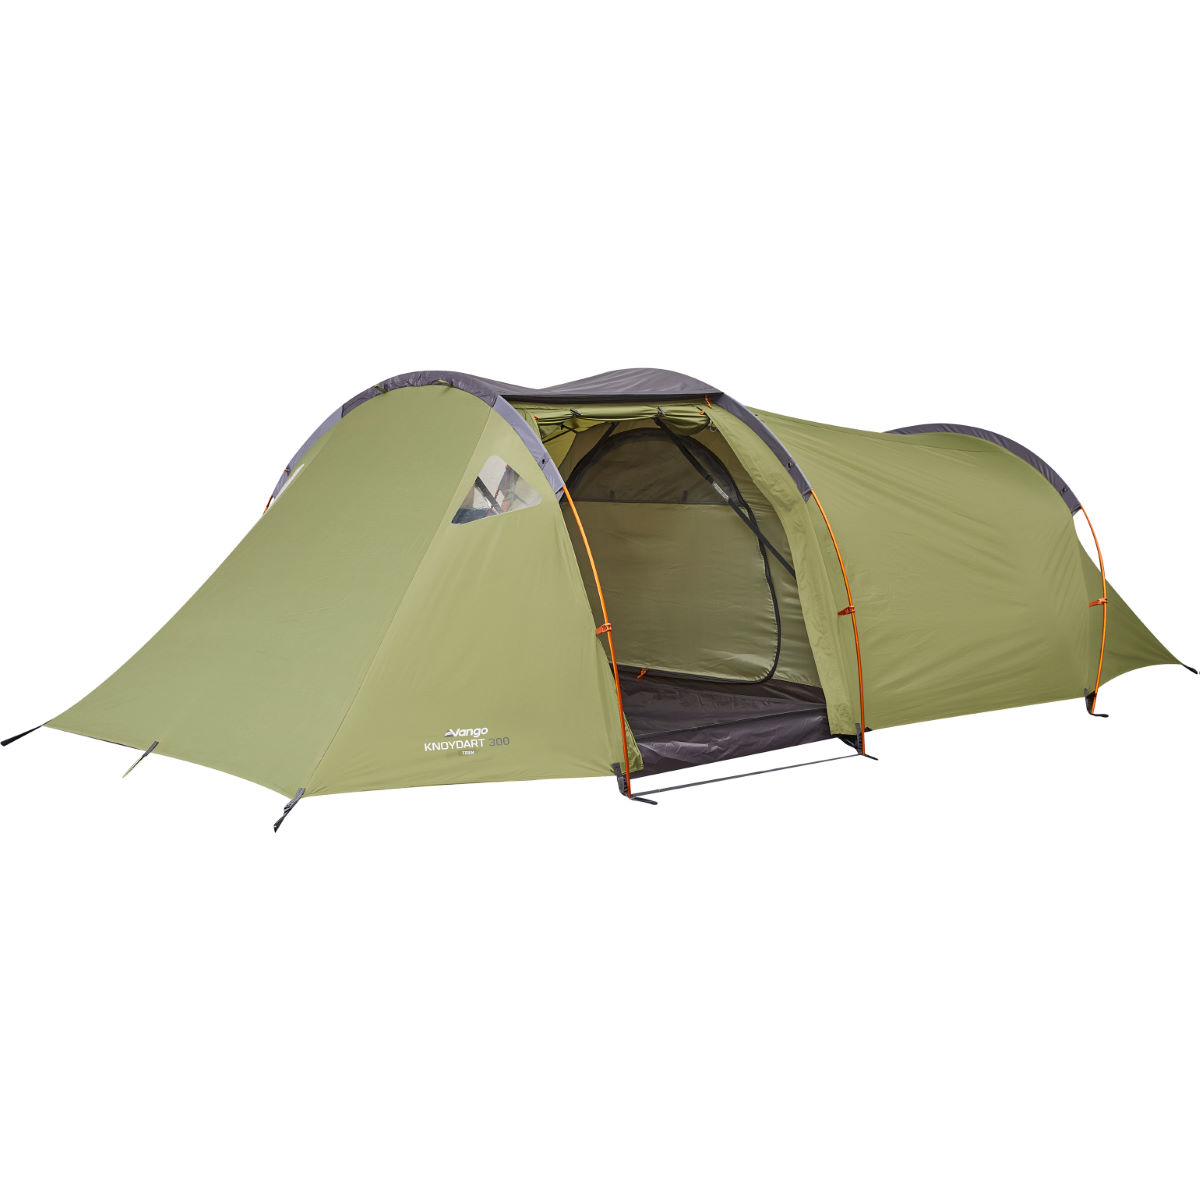 Vango Vango Knoydart 300 Three Person Tent   Tents